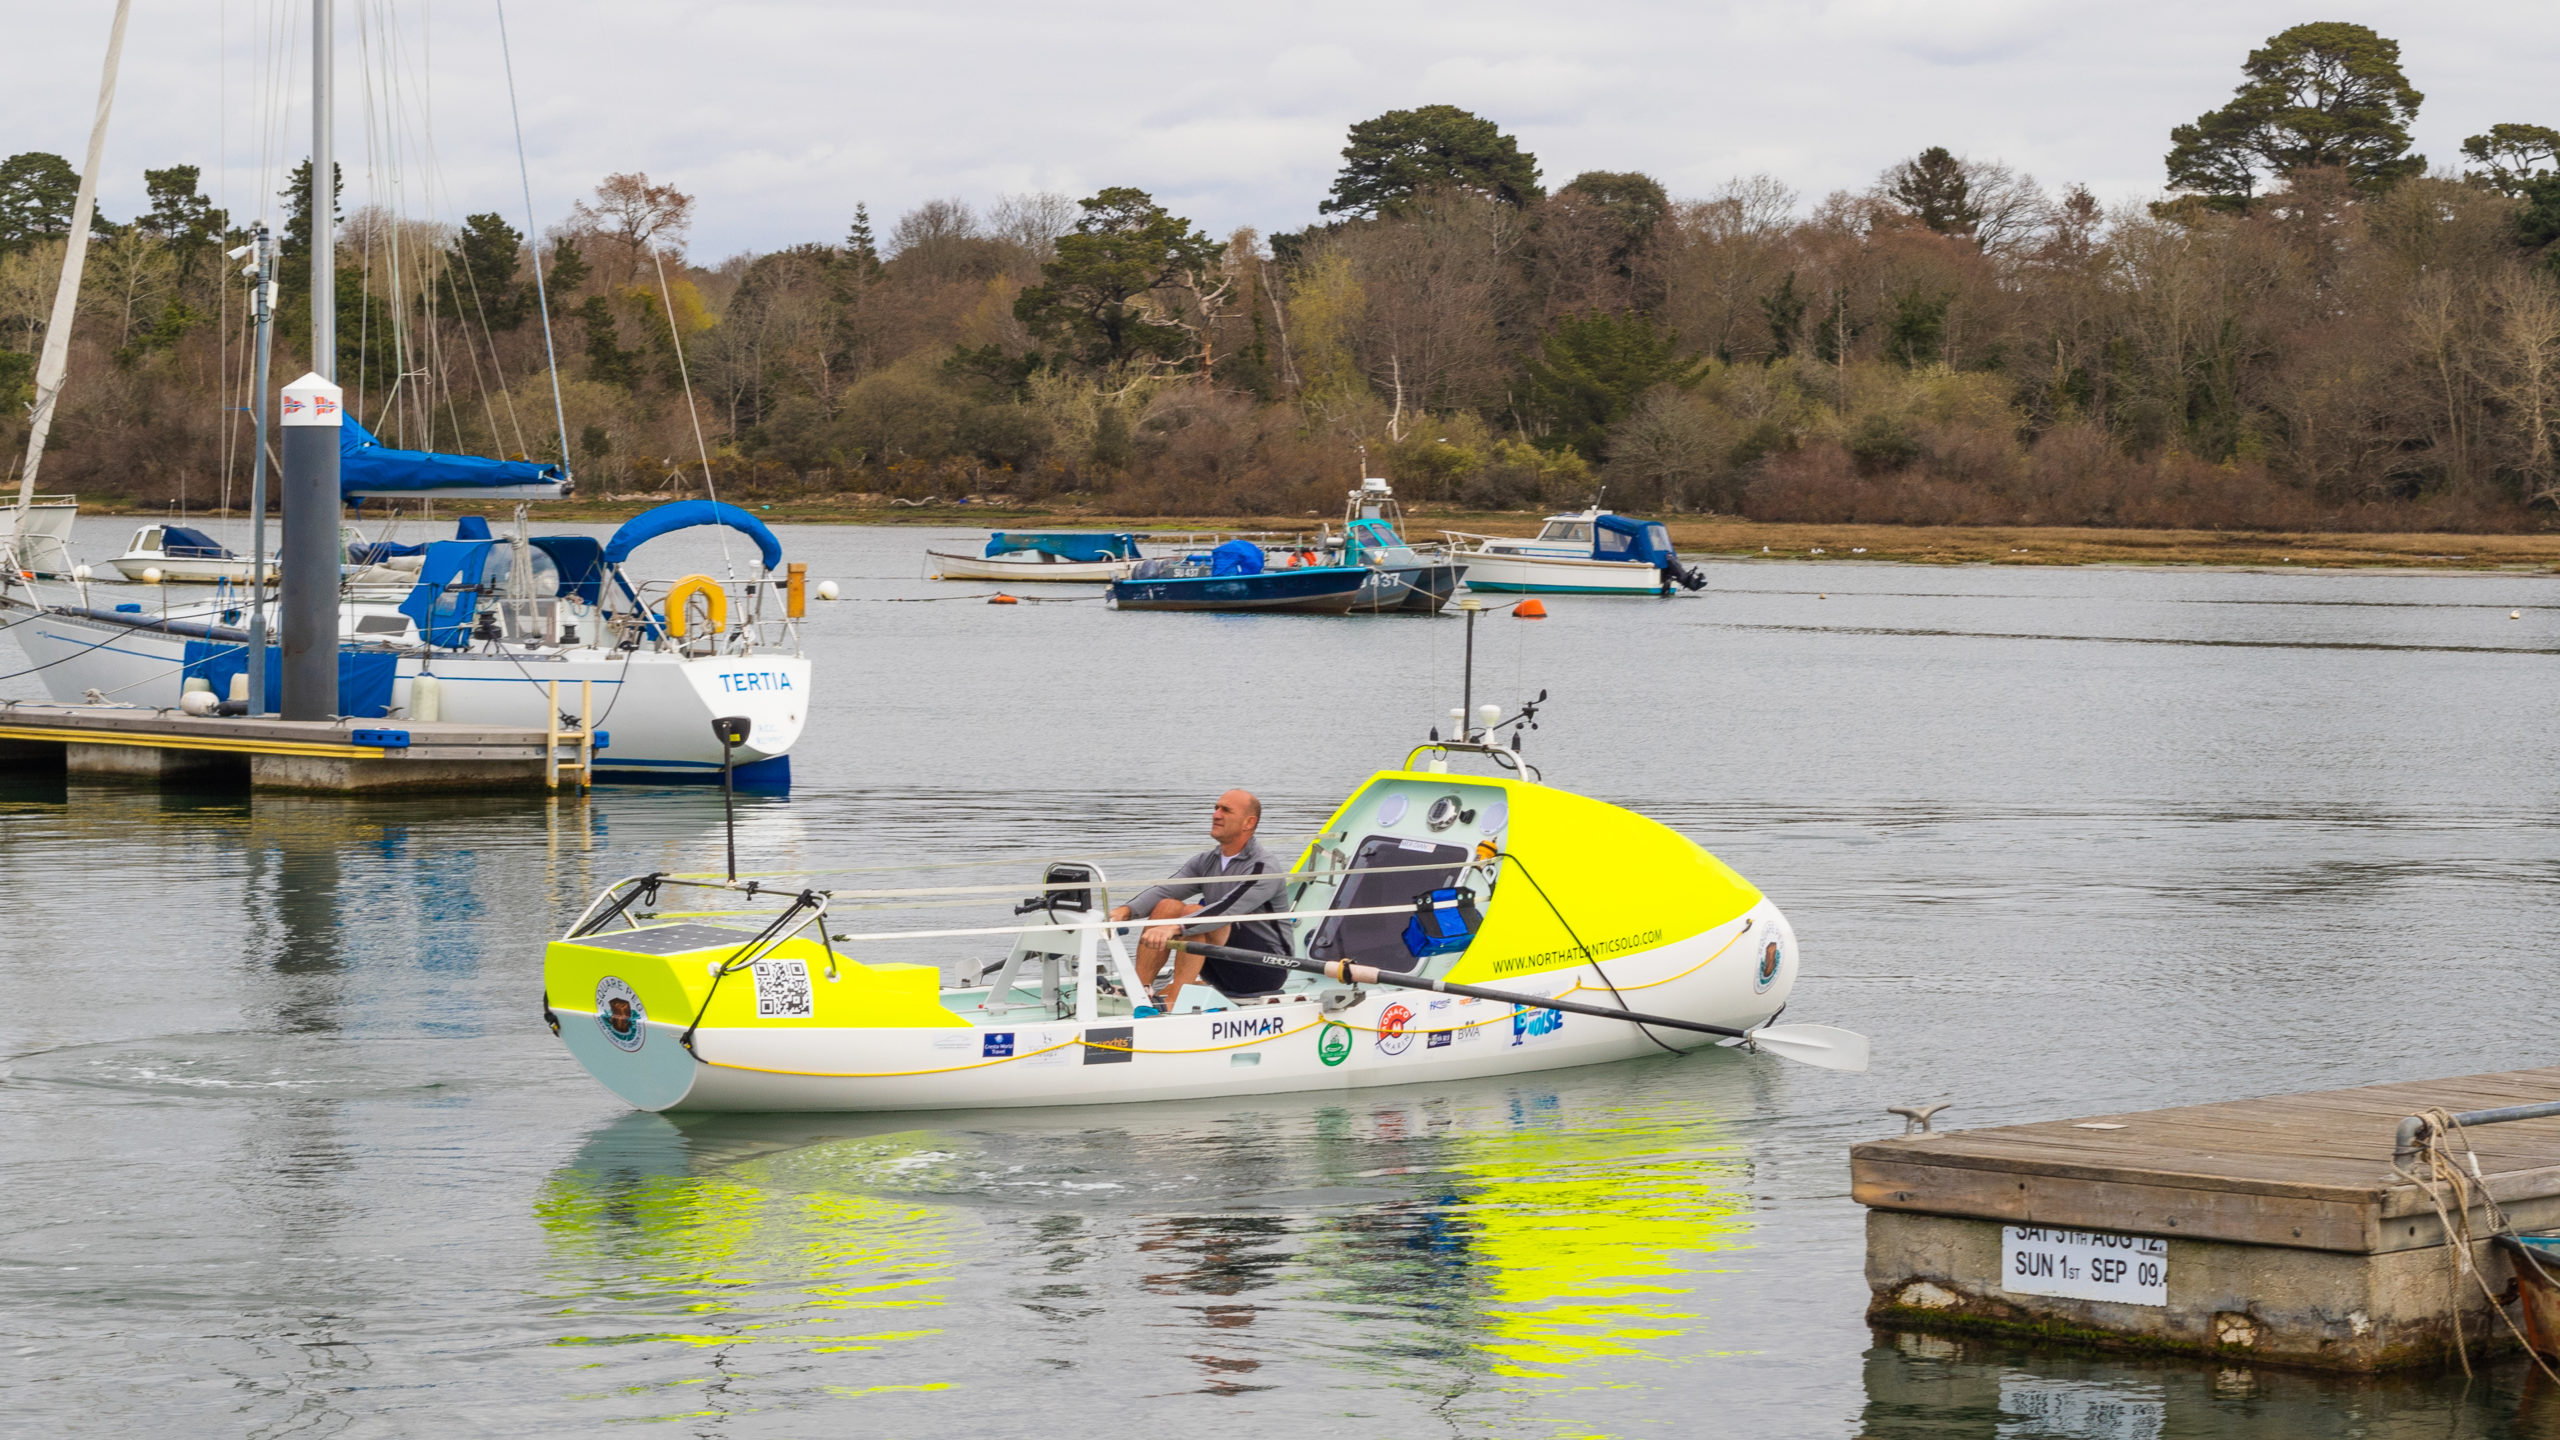 Adventurer Mark Delstanche is rowing and making history